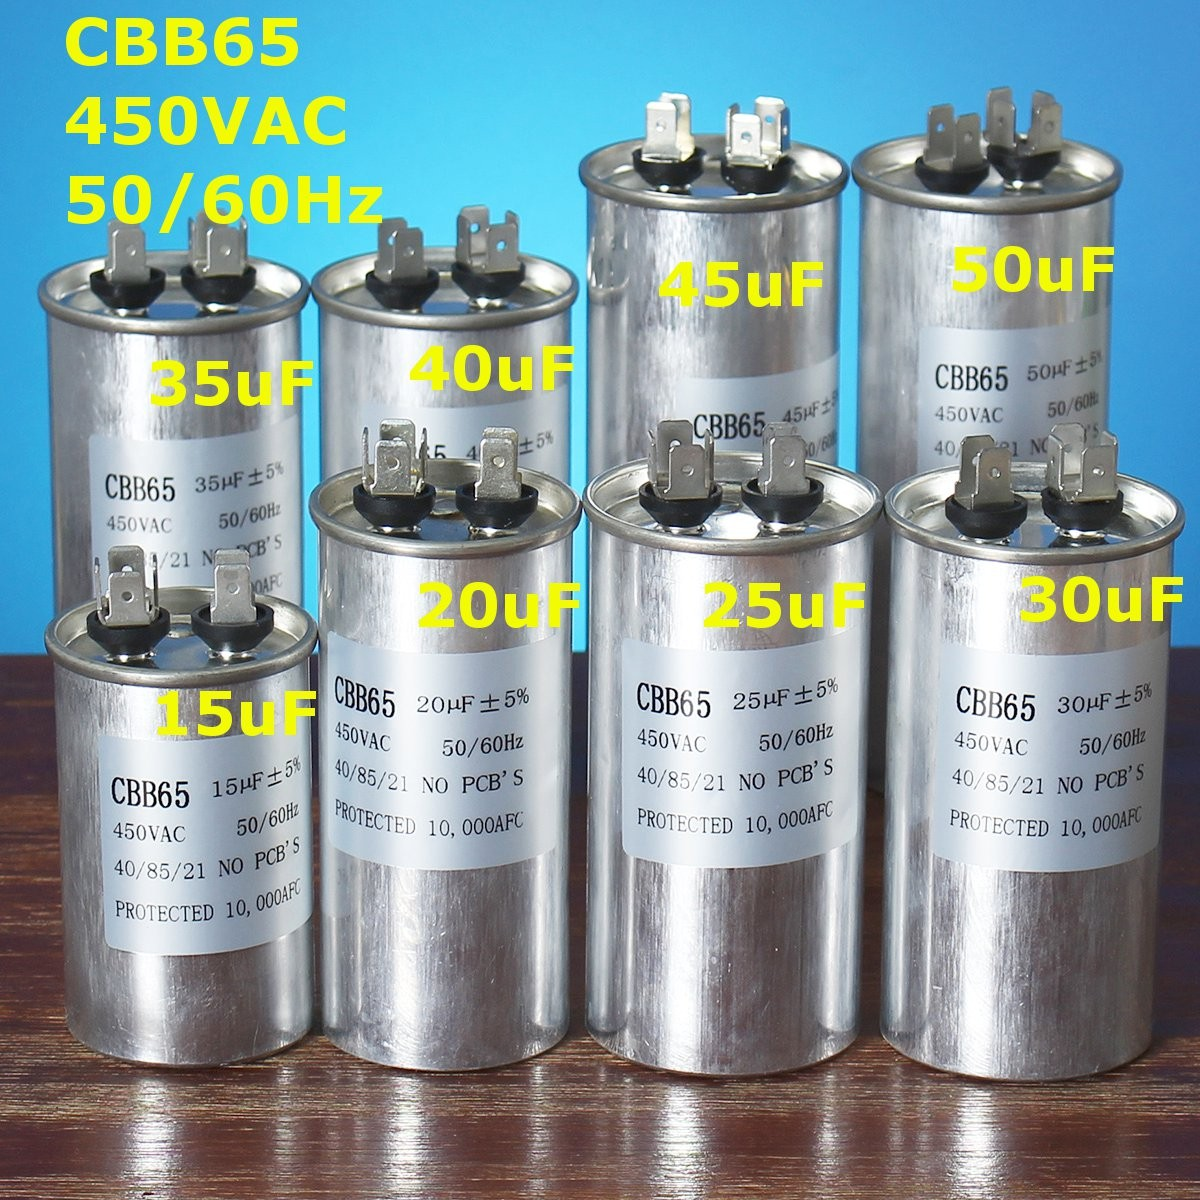 15-50uF CBB65 Air Oil Motor Conditioner Compressor Start Capacitor 450V 50/60HZ